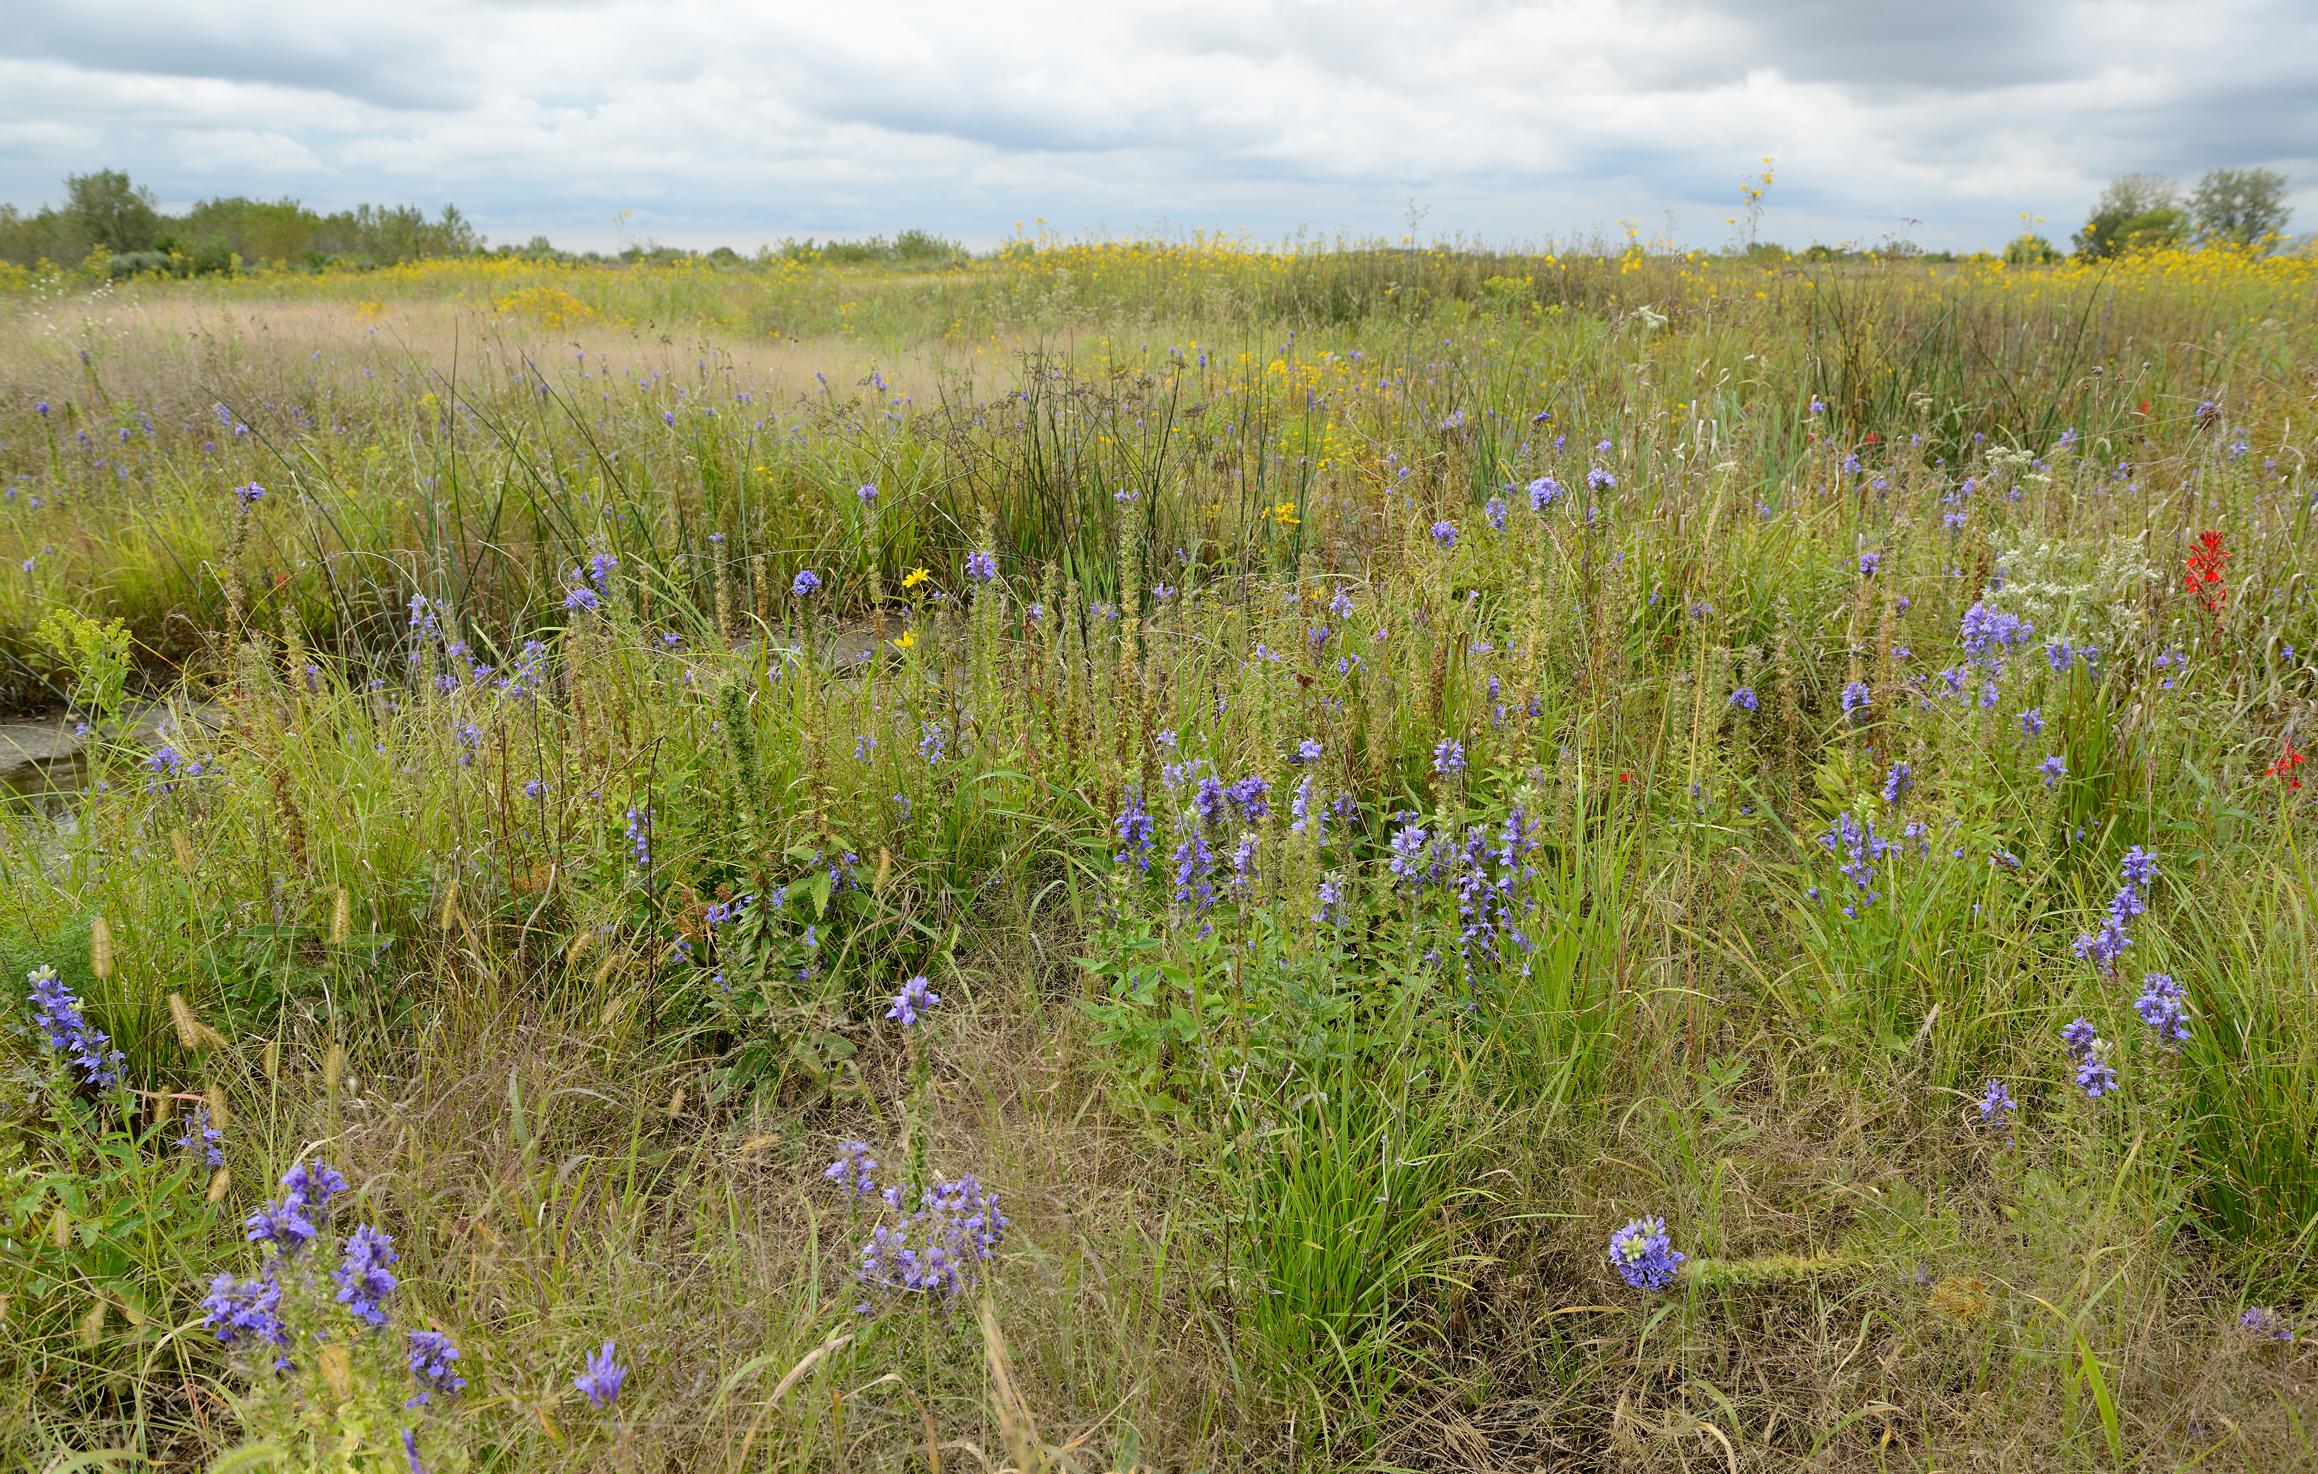 After four years the Lobelia Meadows restoration has fulfilled its name. Many areas of the site are covered with native lobelias: cardinal flower (red), great blue lobelia, and pale spiked lobelia (not pictured here). Photo by Gary Sullivan/TWI.